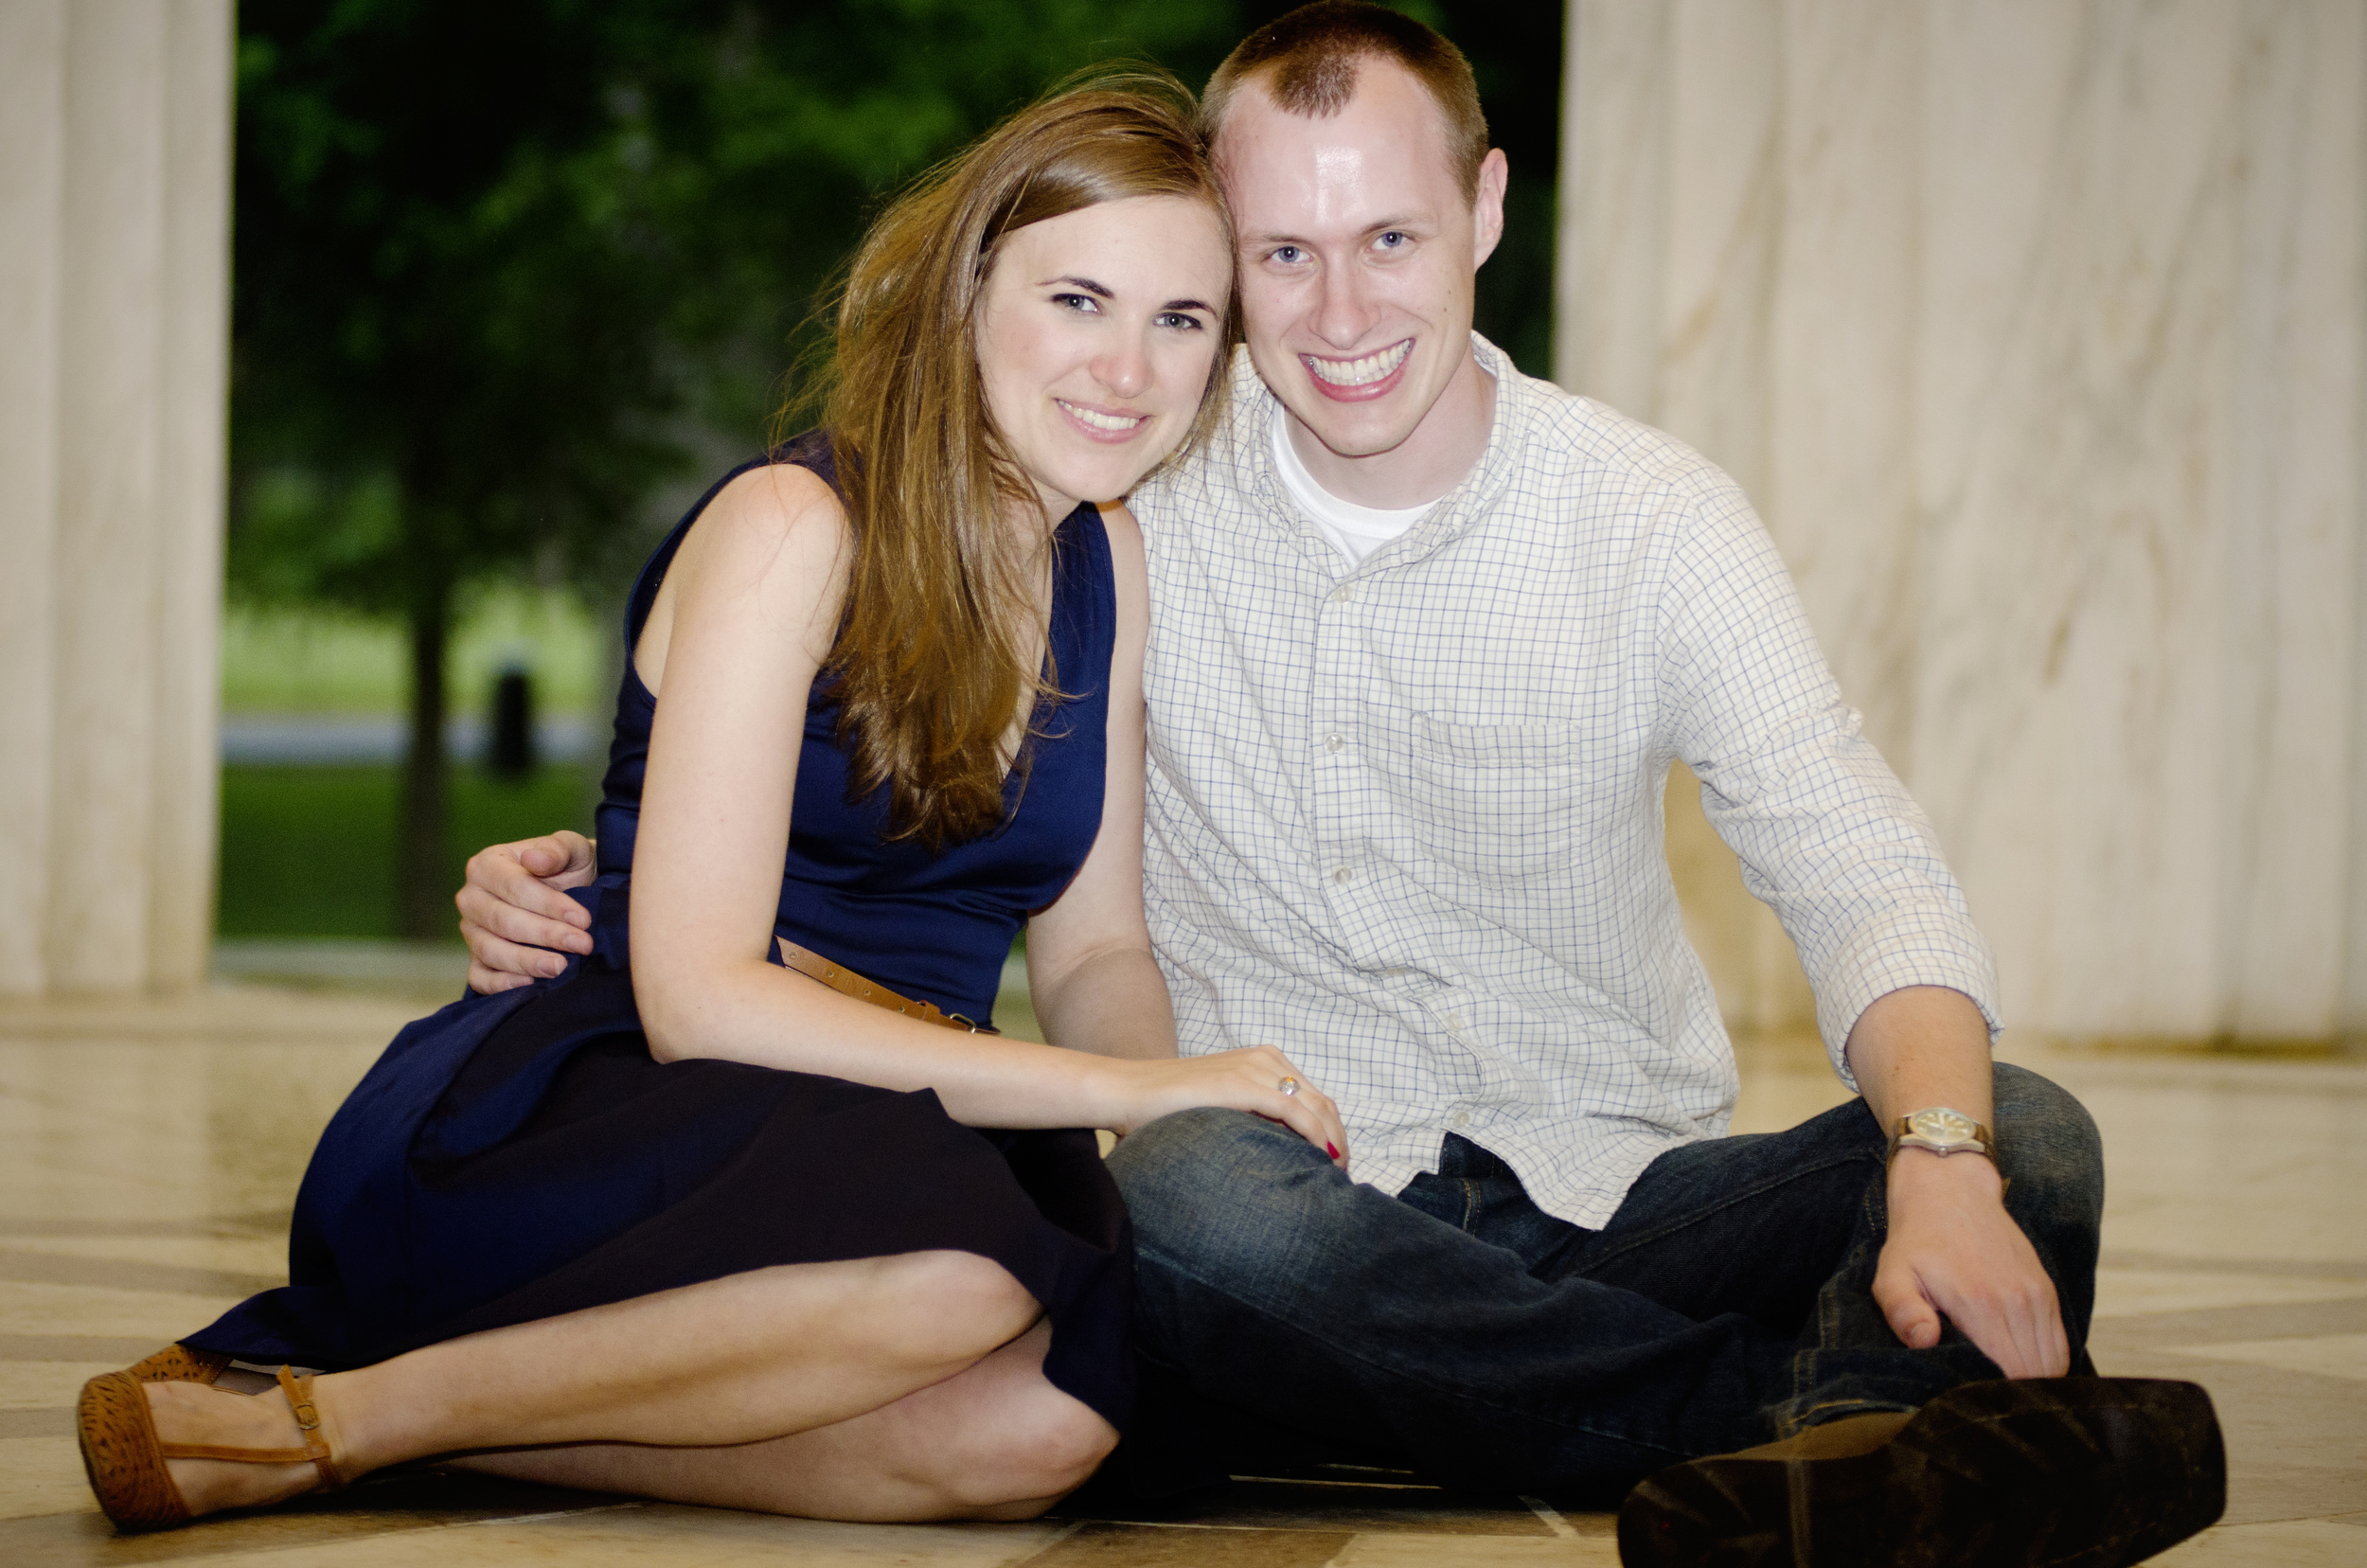 national mall engagement photo session ideas